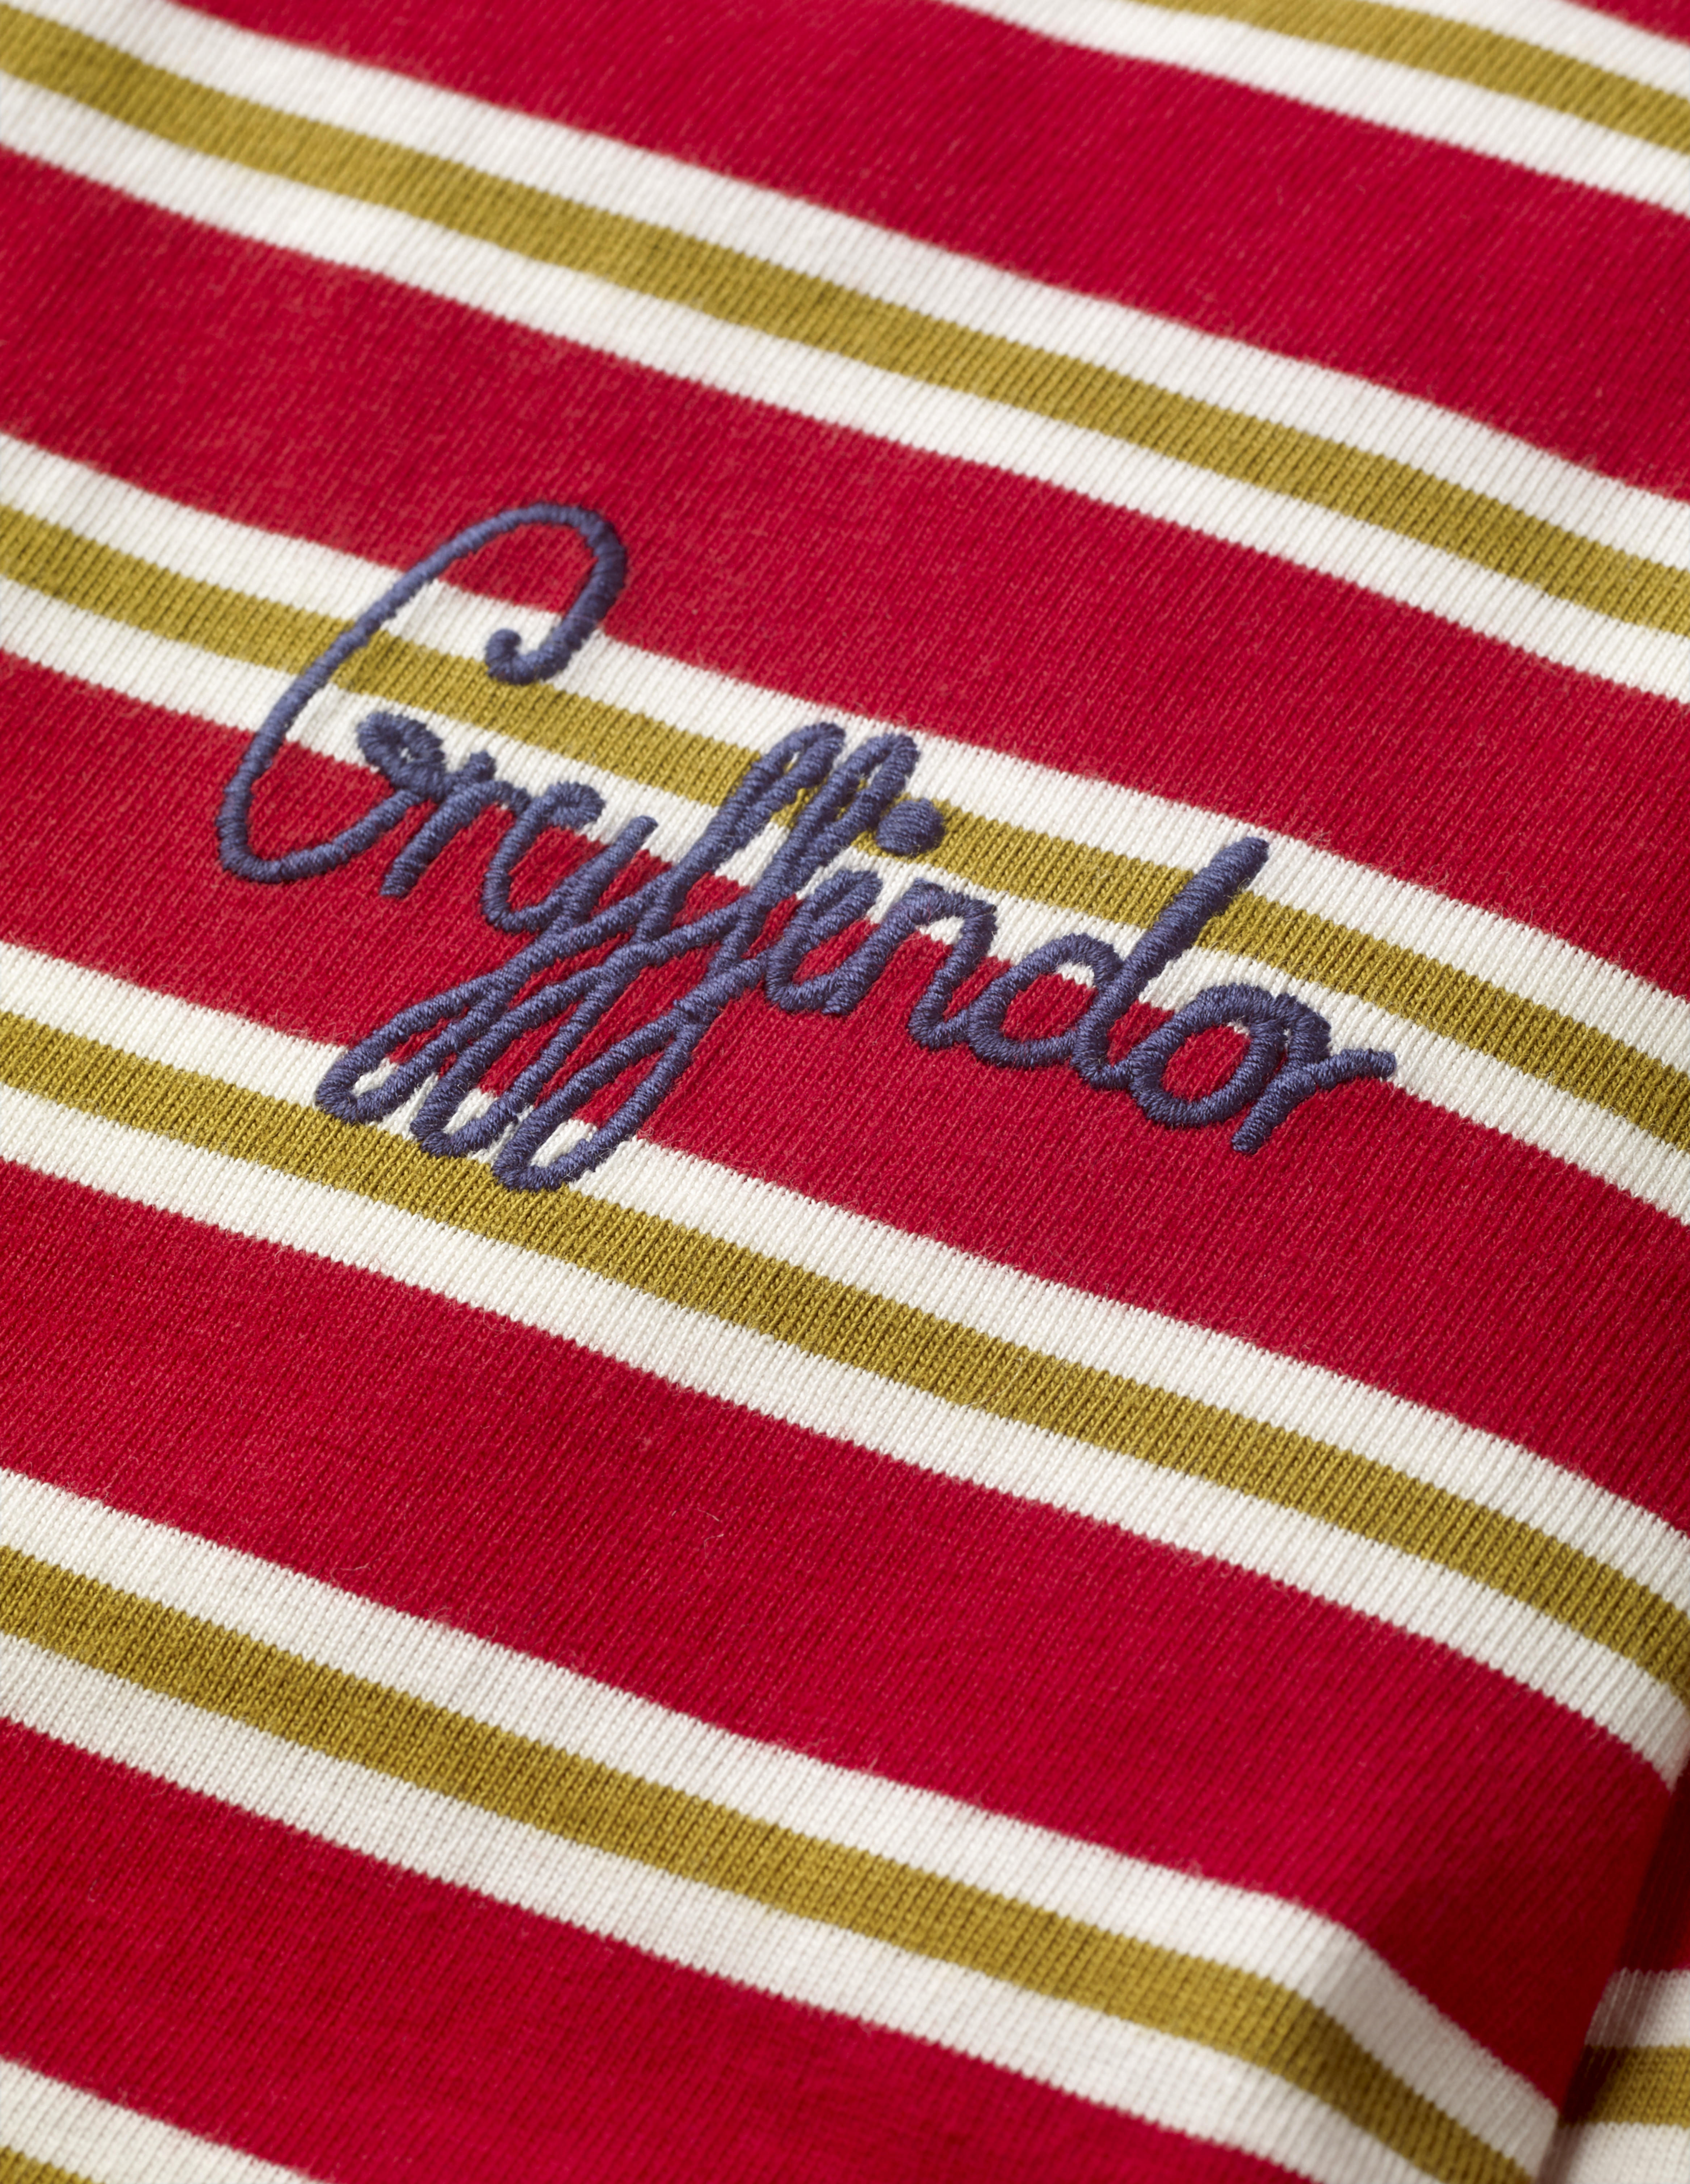 """This close-up of the Mini Boden House Breton in red better shows the word """"Gryffindor"""" written in blue script in the front pocket area. It retails between £20 and £22."""